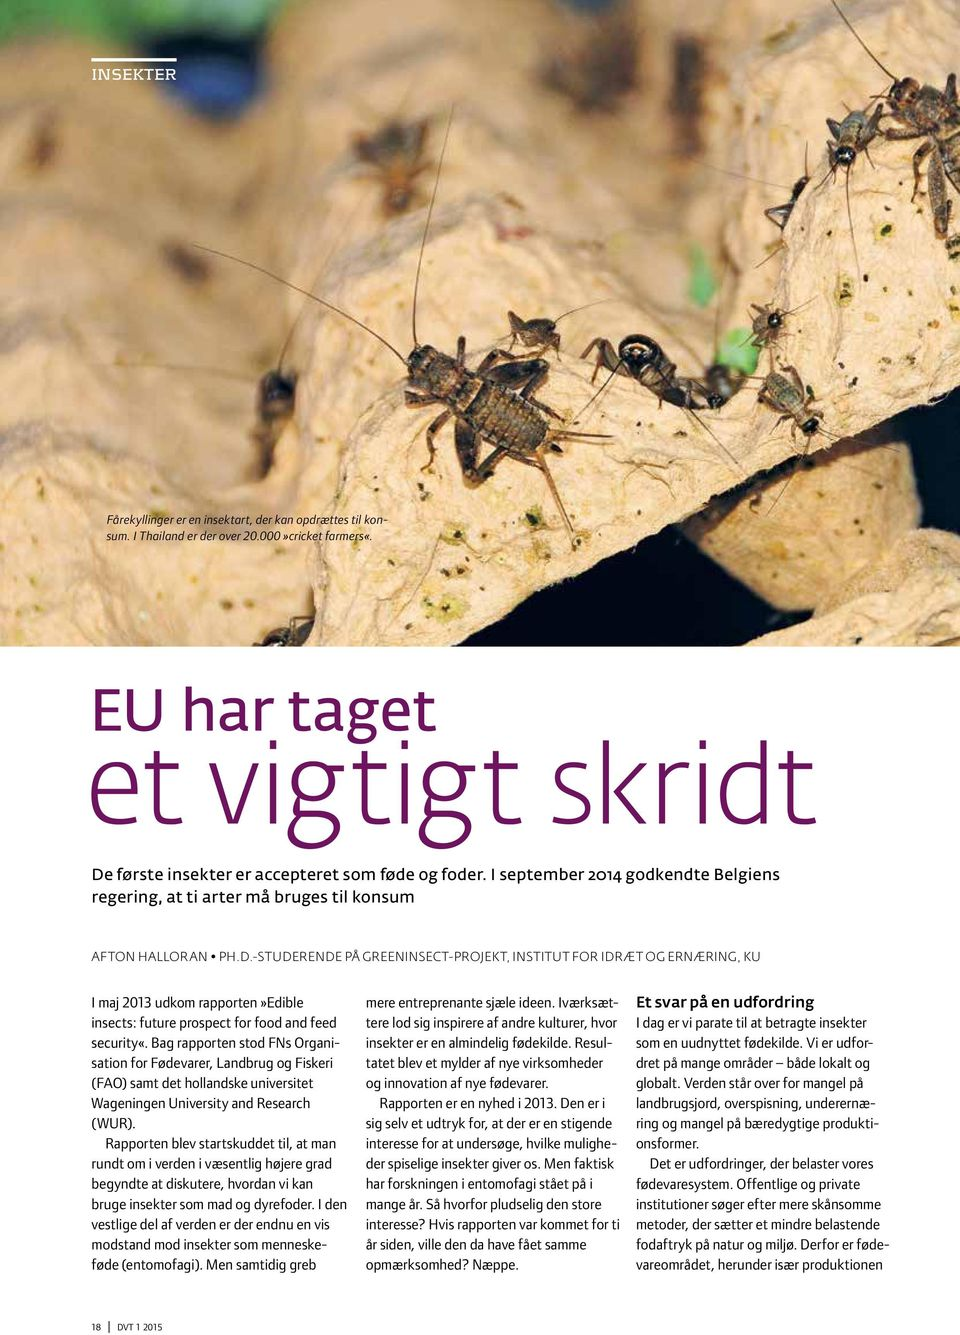 -STUDERENDE PÅ GREENINSECT-PROJEKT, INSTITUT FOR IDRÆT OG ERNÆRING, KU I maj 2013 udkom rapporten»edible insects: future prospect for food and feed security«.